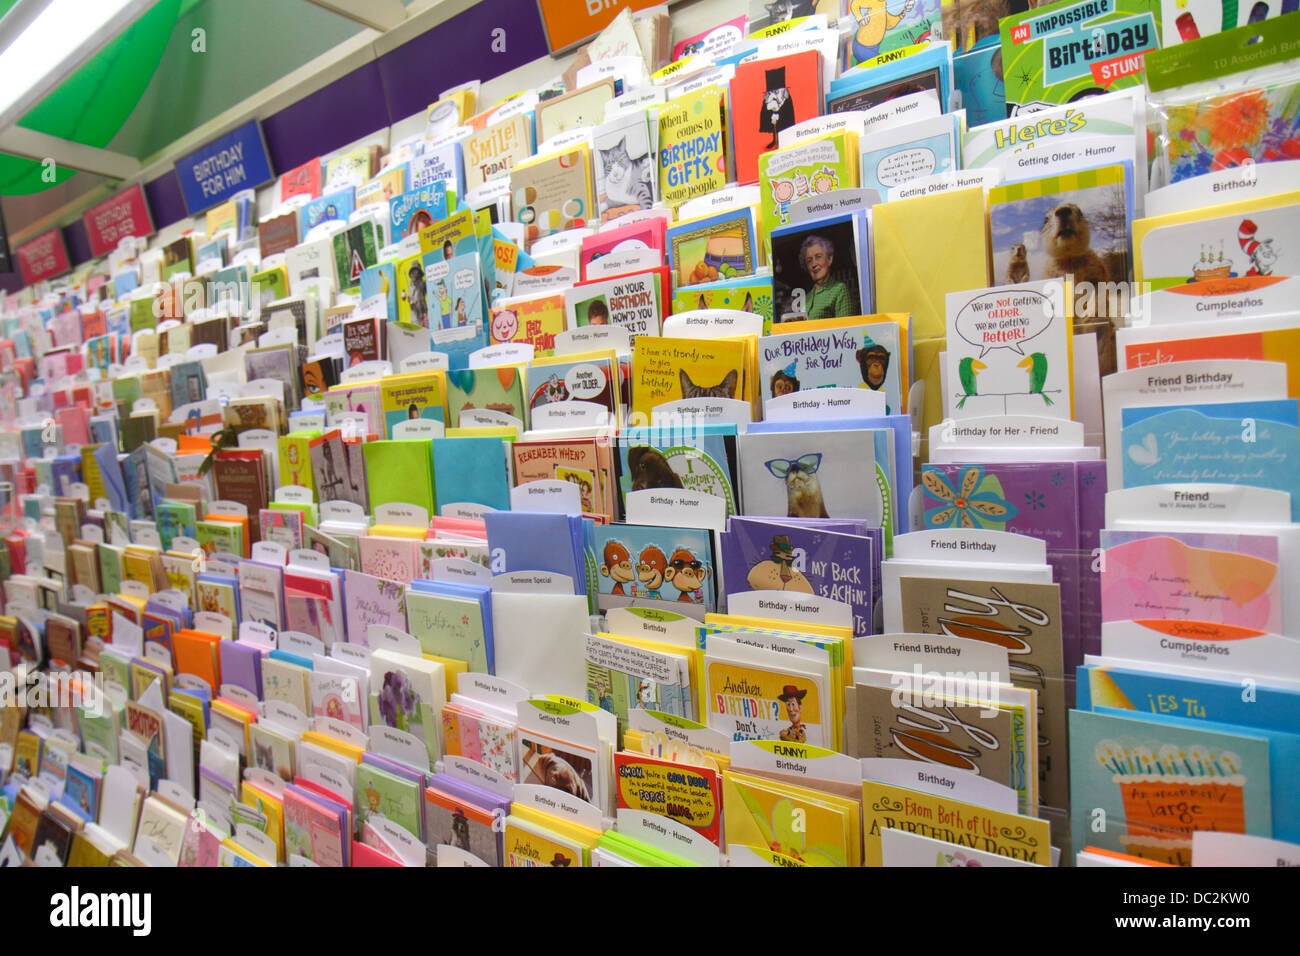 Florida Weston Fort Ft Lauderdale Publix grocery store – Birthday Cards Store